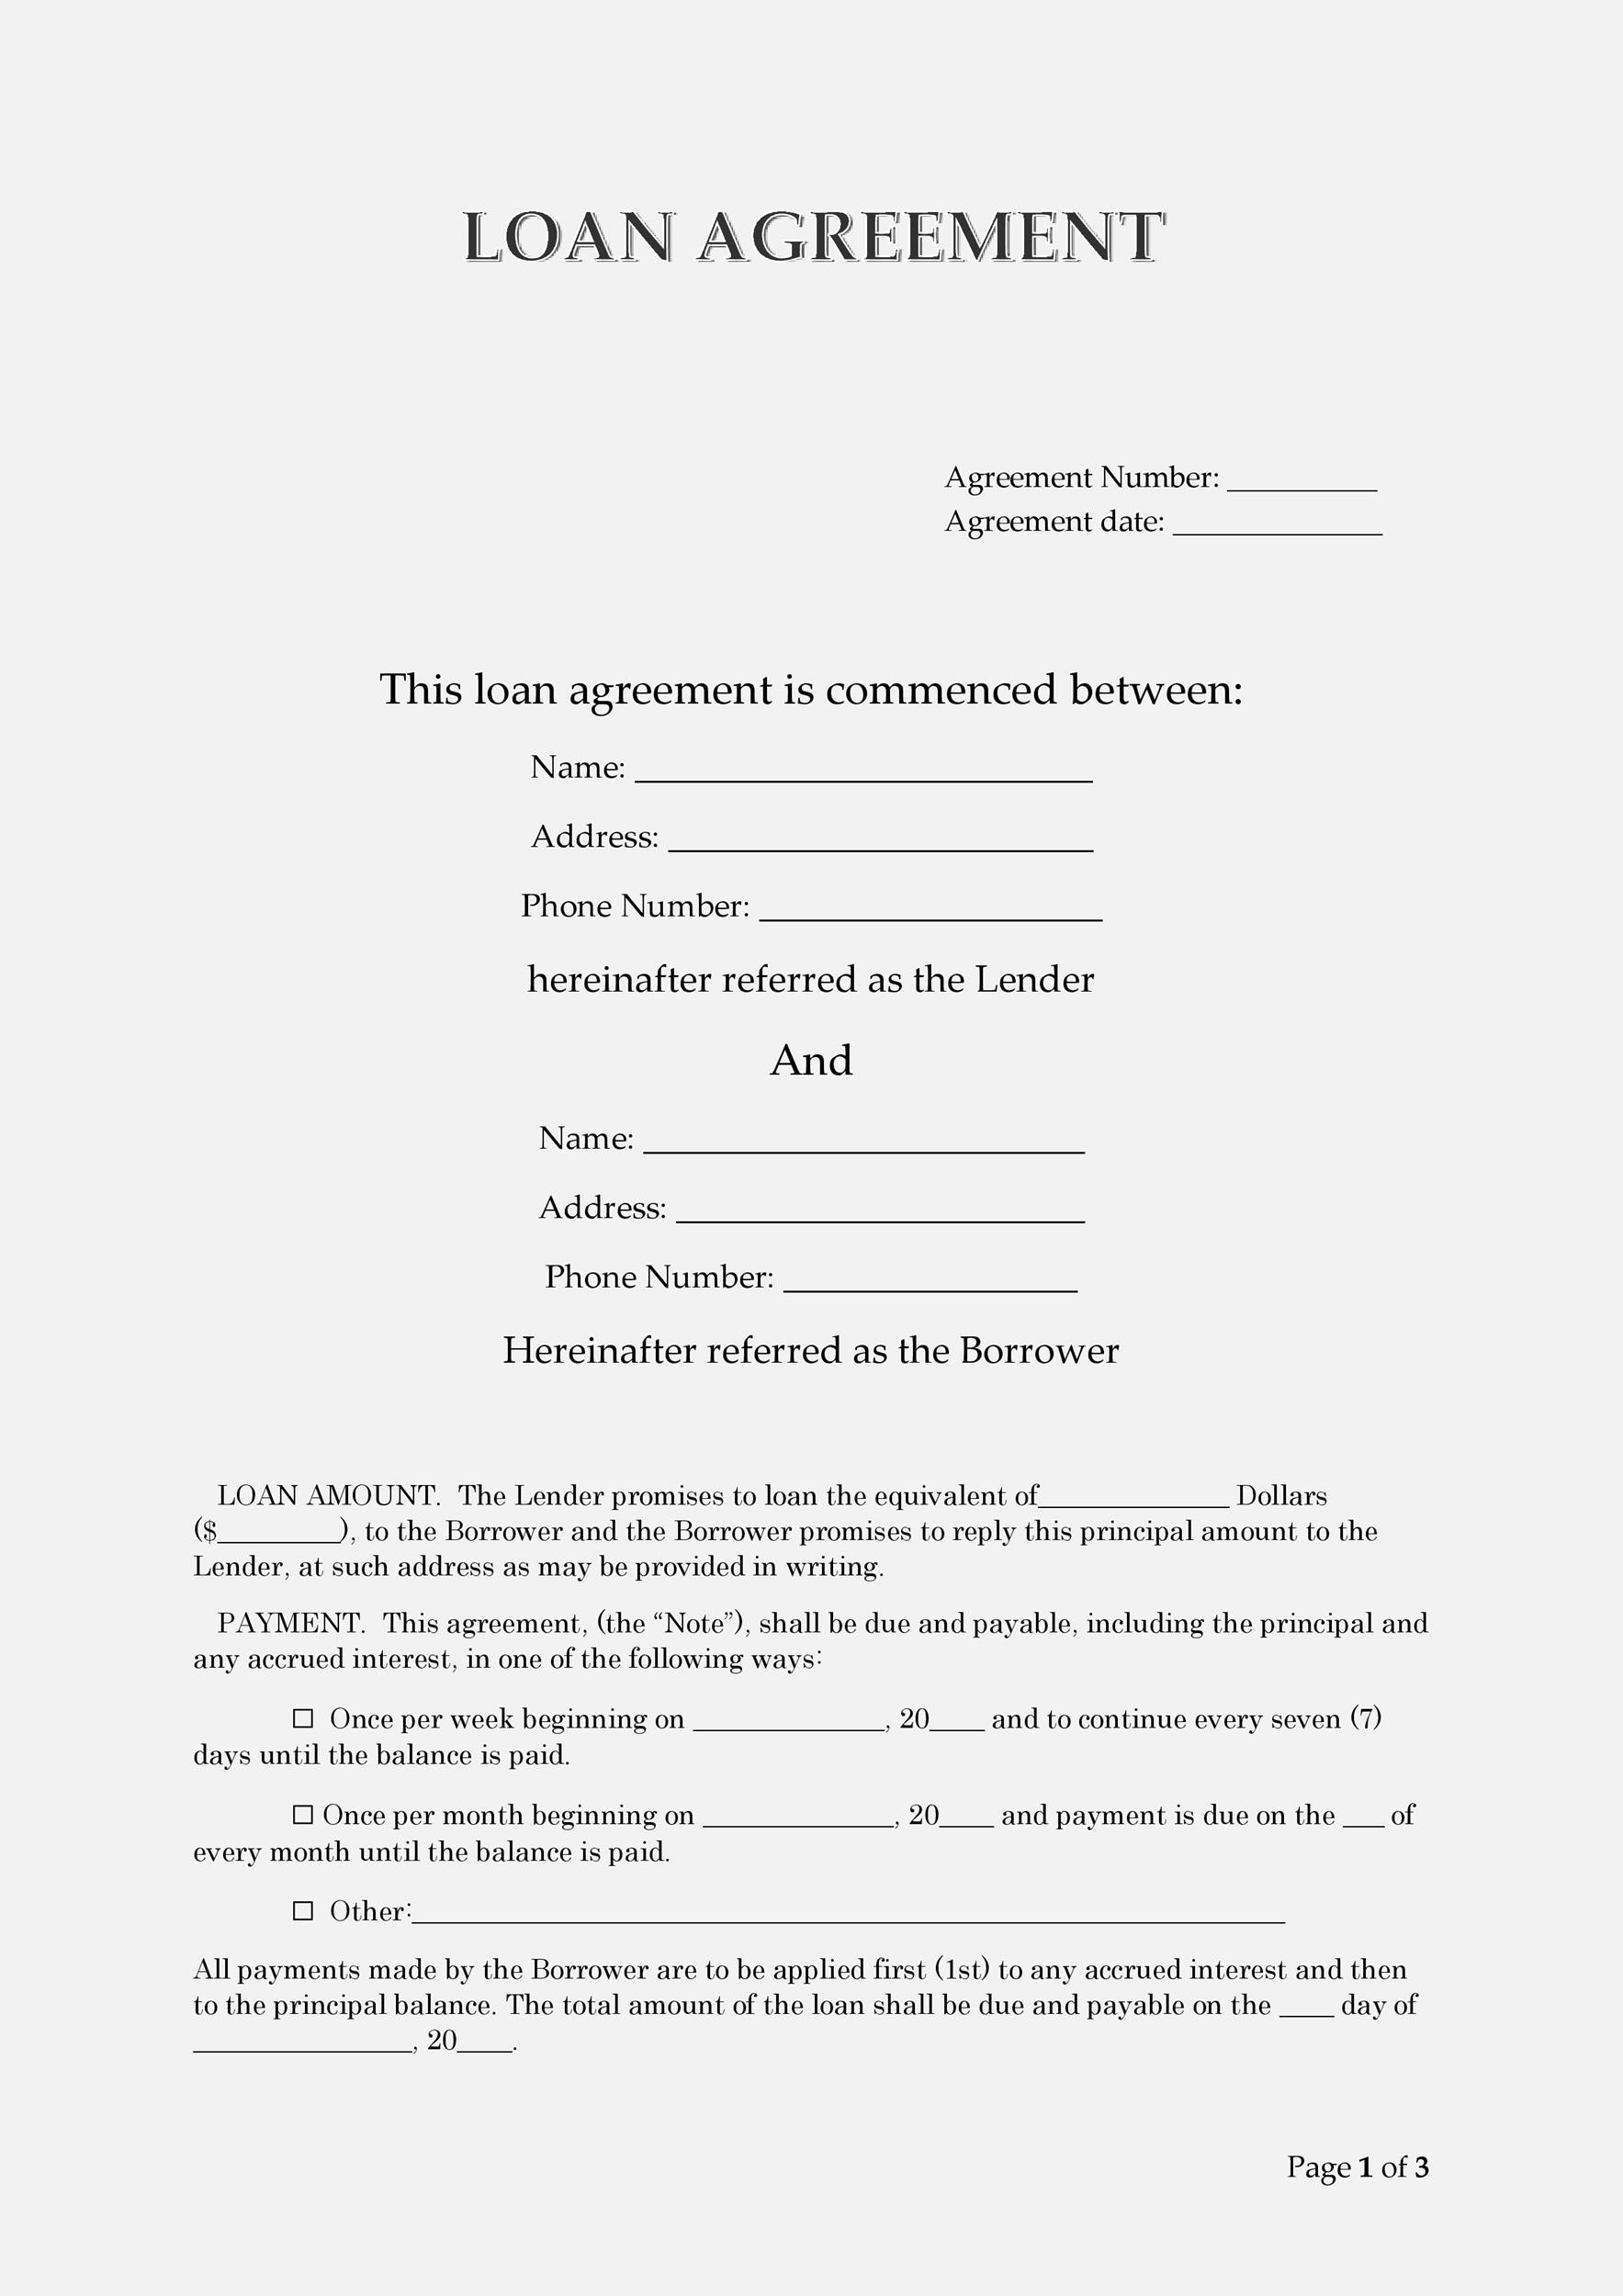 Of course, financing options are plentiful for vehicle purchases for p. 40 Free Loan Agreement Templates Word Pdf Á… Templatelab